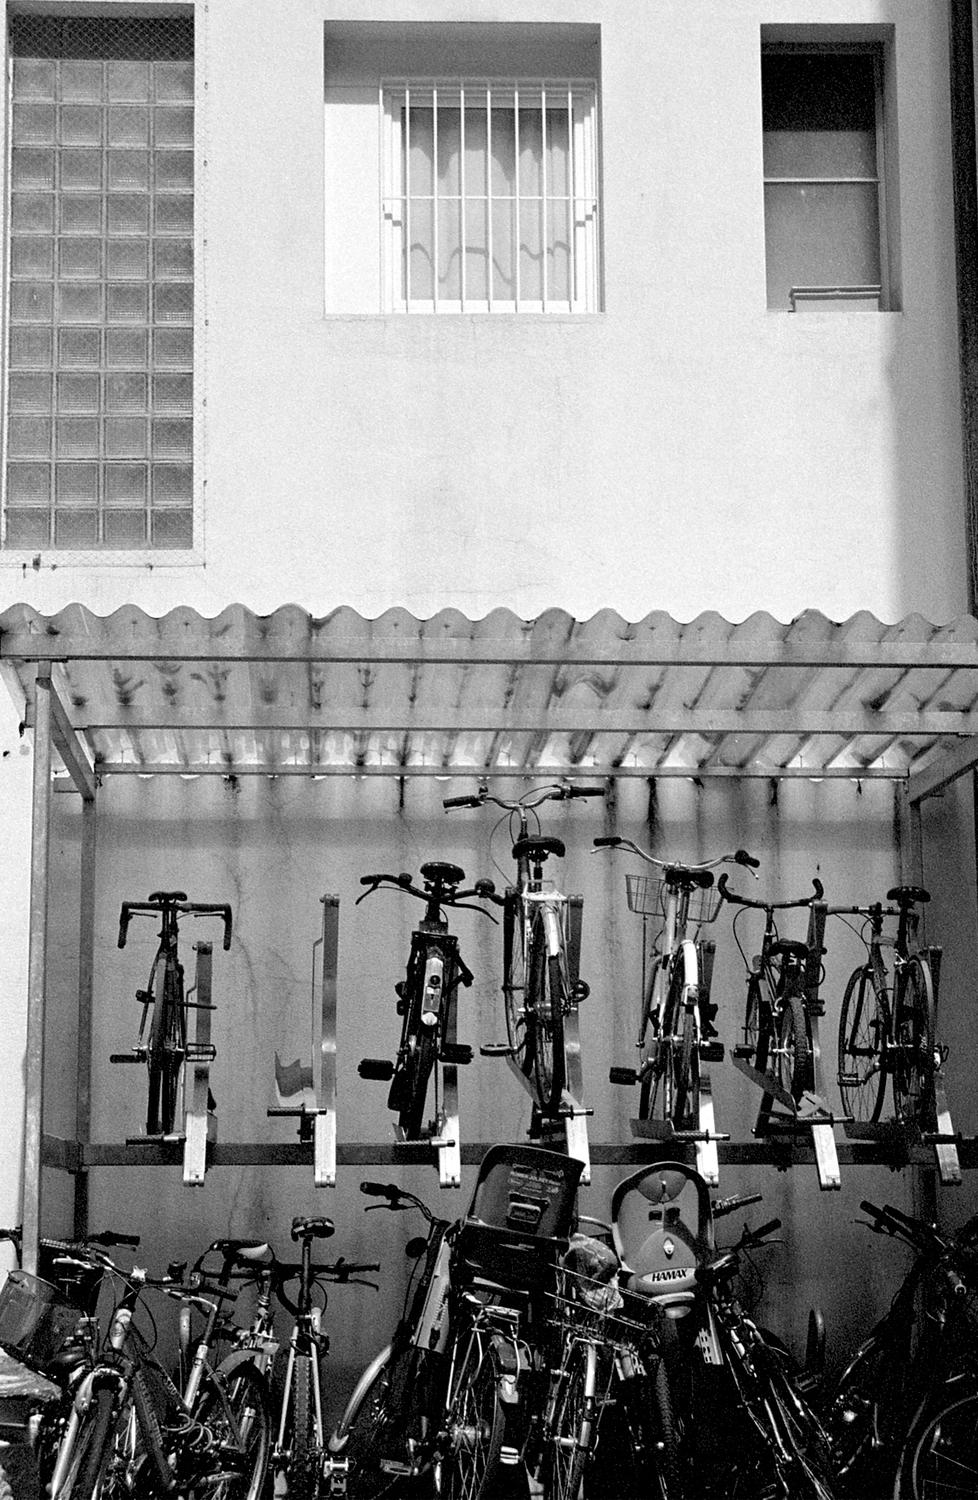 Bicycle Stand, Geneve 2017   Edition 1 of 2